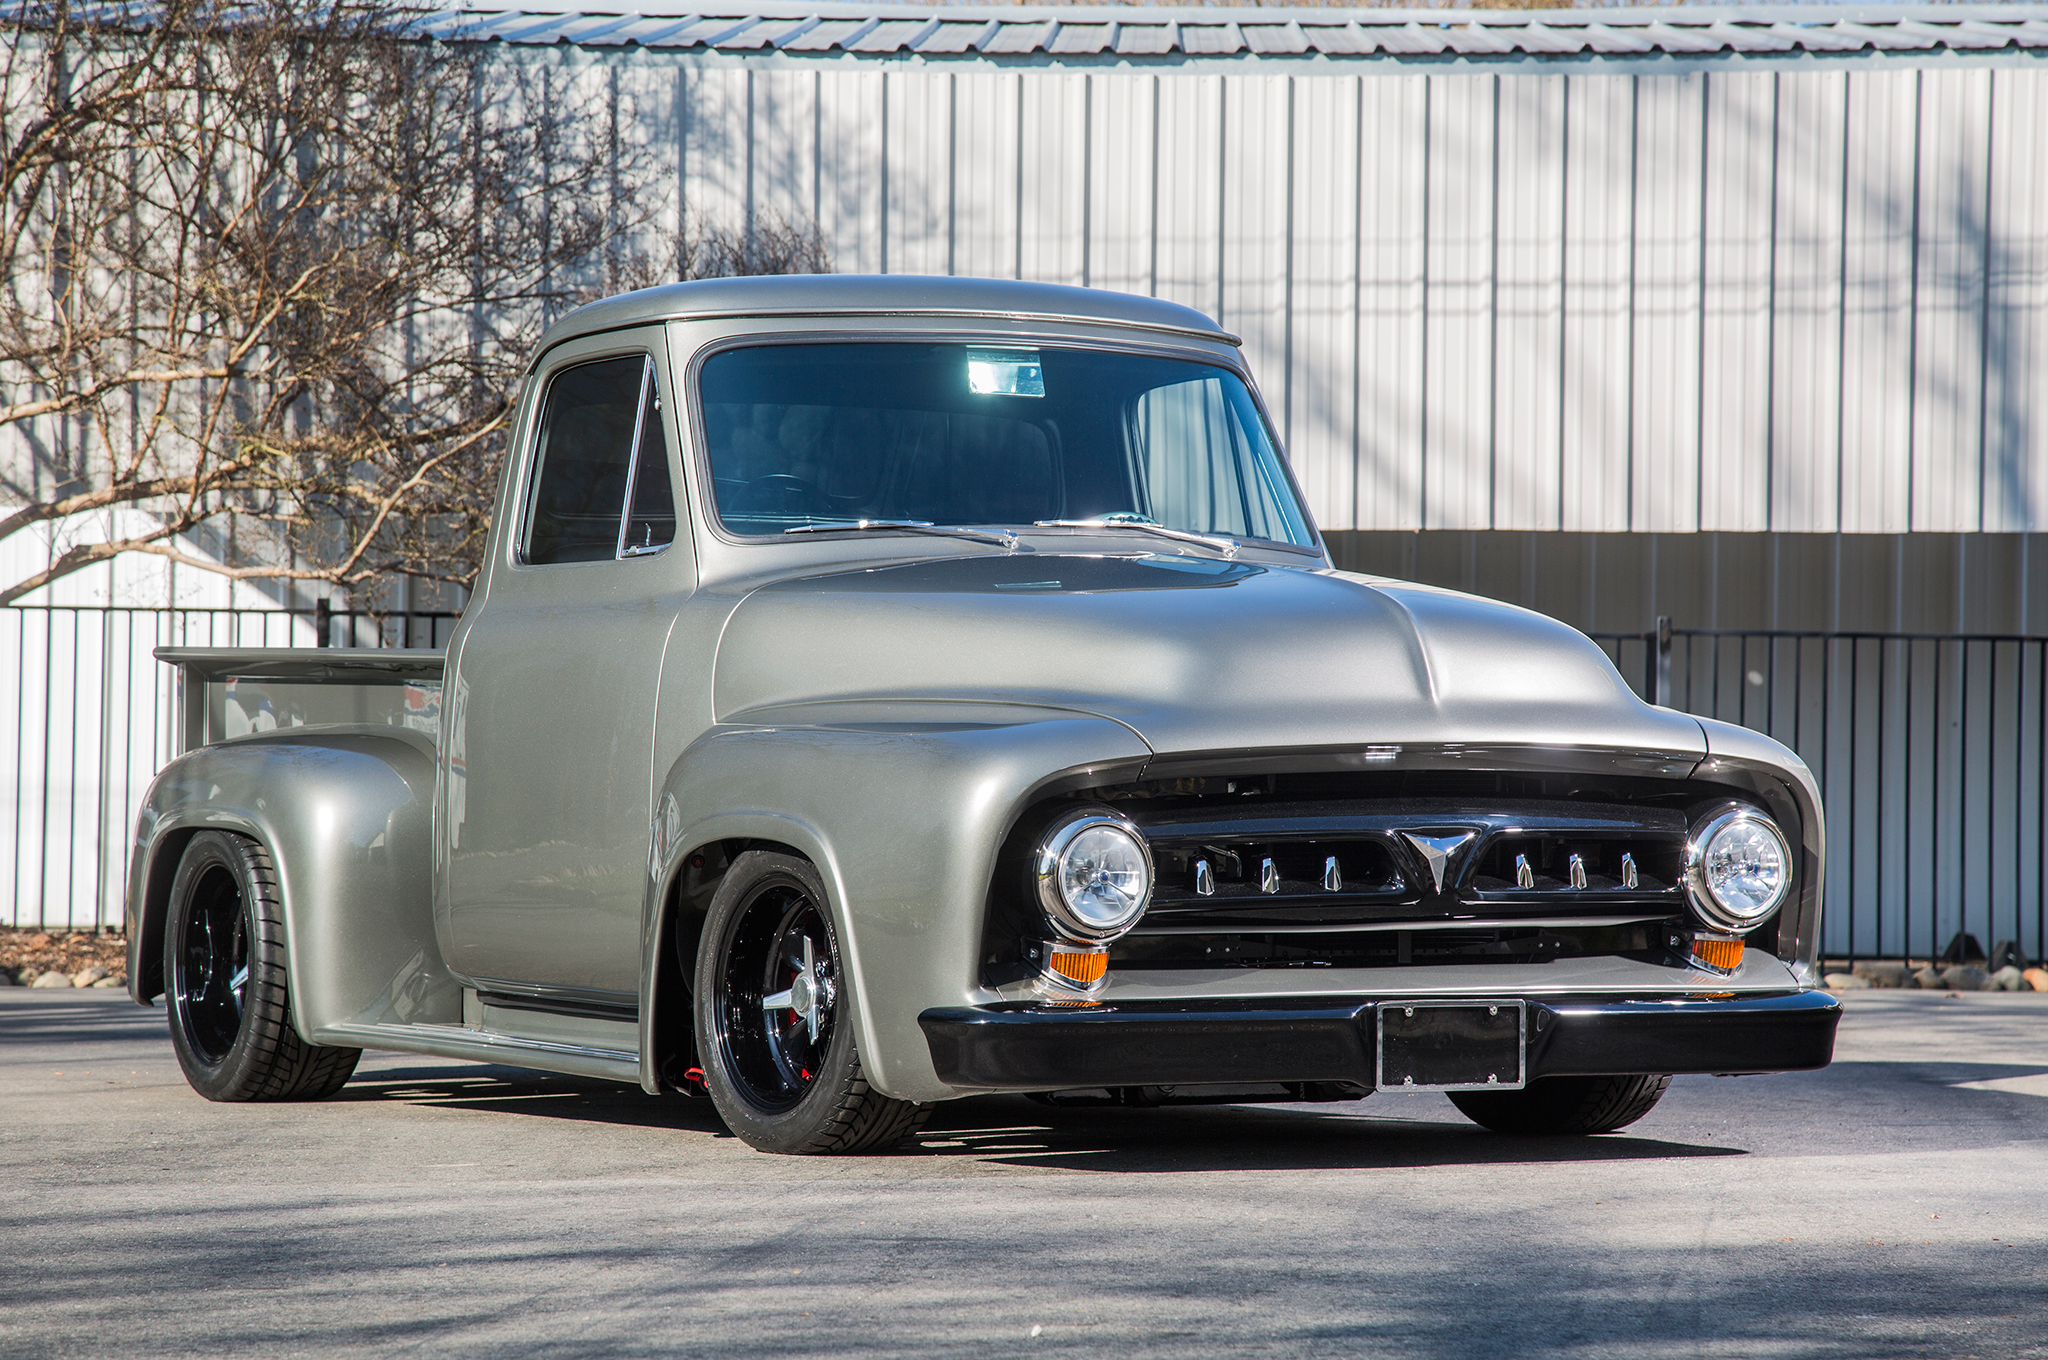 Ford F100 Wallpaper and Background Image 1280x1024 ID97411 2048x1360